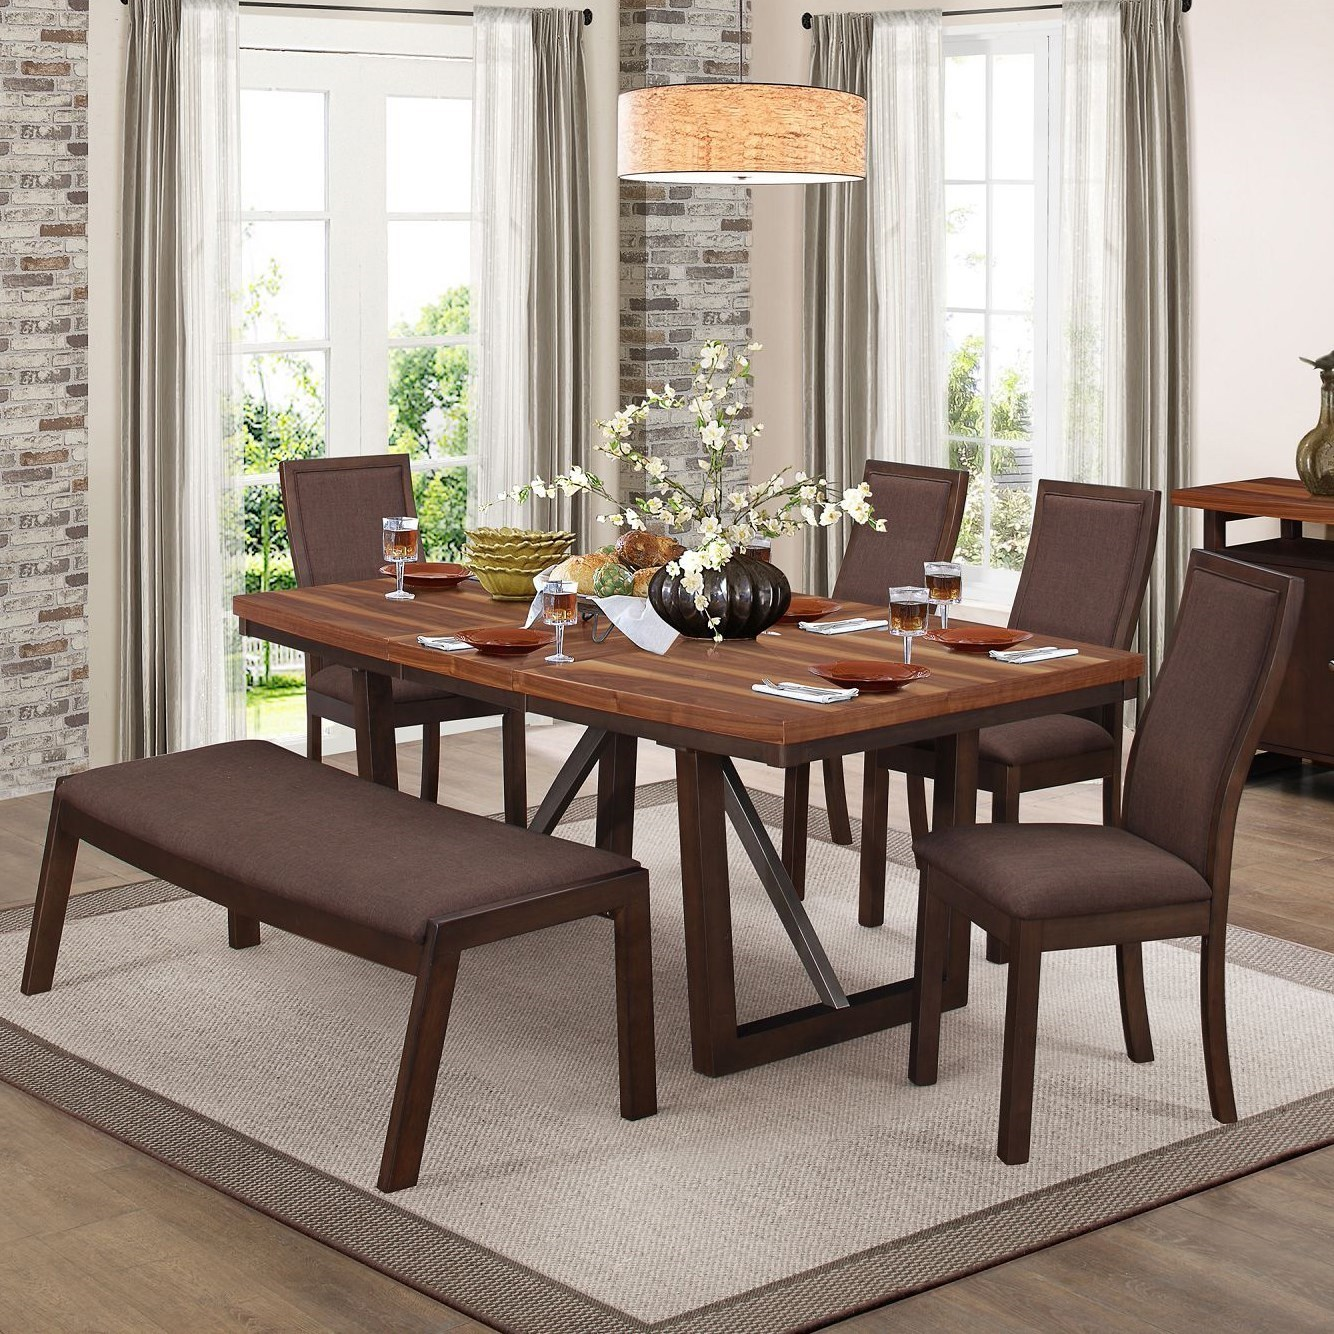 Compson Table and Chair Set with Bench by Homelegance at Beck's Furniture